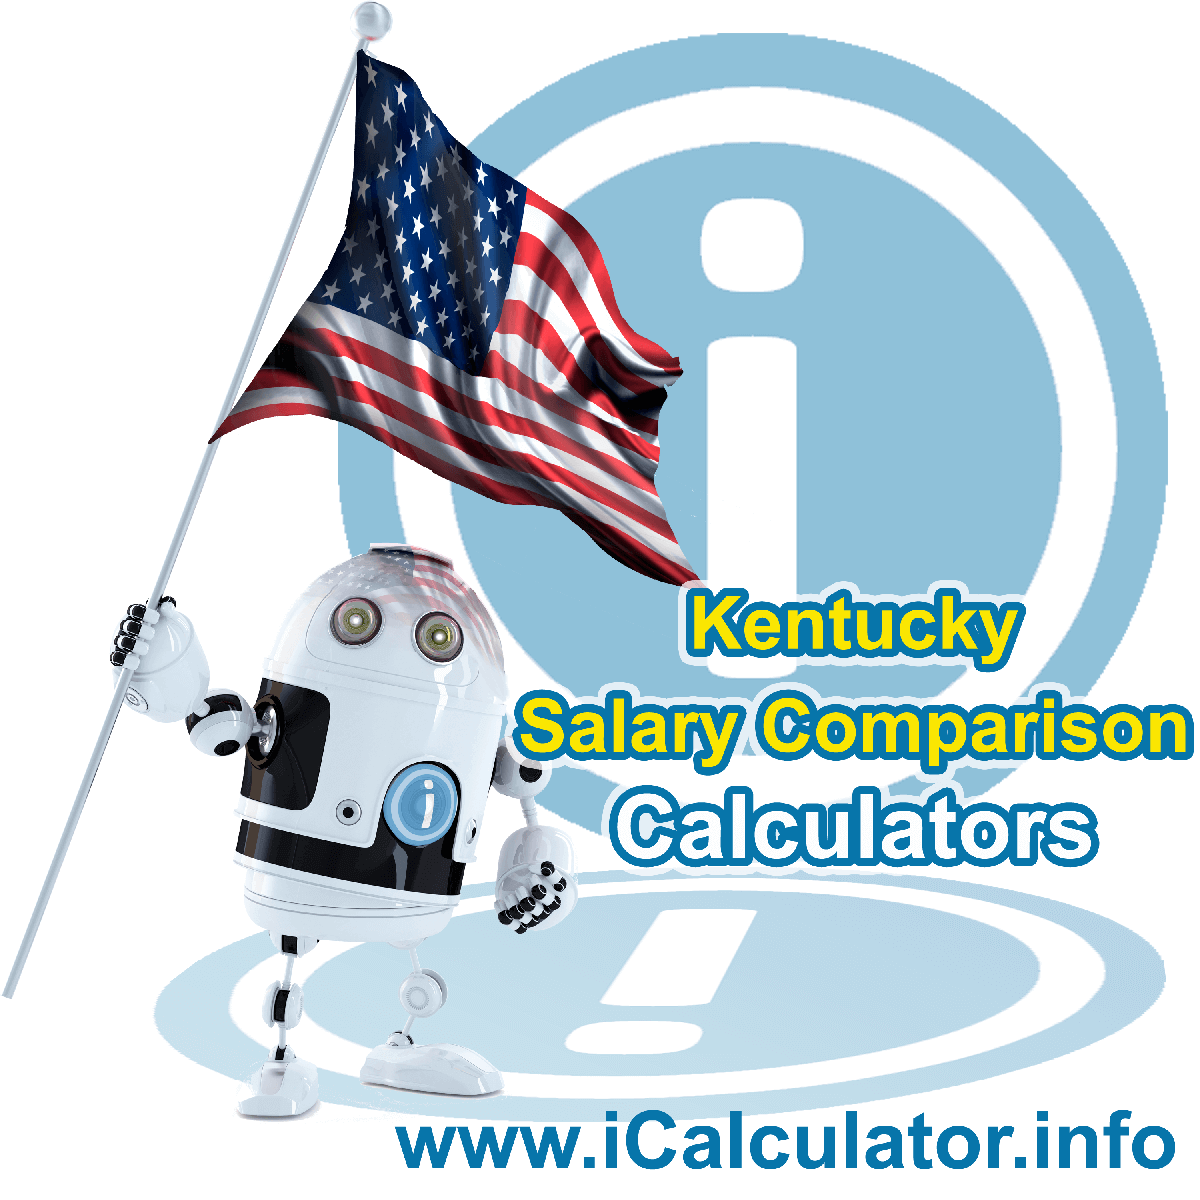 Kentucky Salary Comparison Calculator 2021 | iCalculator™ | The Kentucky Salary Comparison Calculator allows you to quickly calculate and compare upto 6 salaries in Kentucky or between other states for the 2021 tax year and historical tax years. Its an excellent tool for jobseekers, pay raise comparison and comparison of salaries between different US States